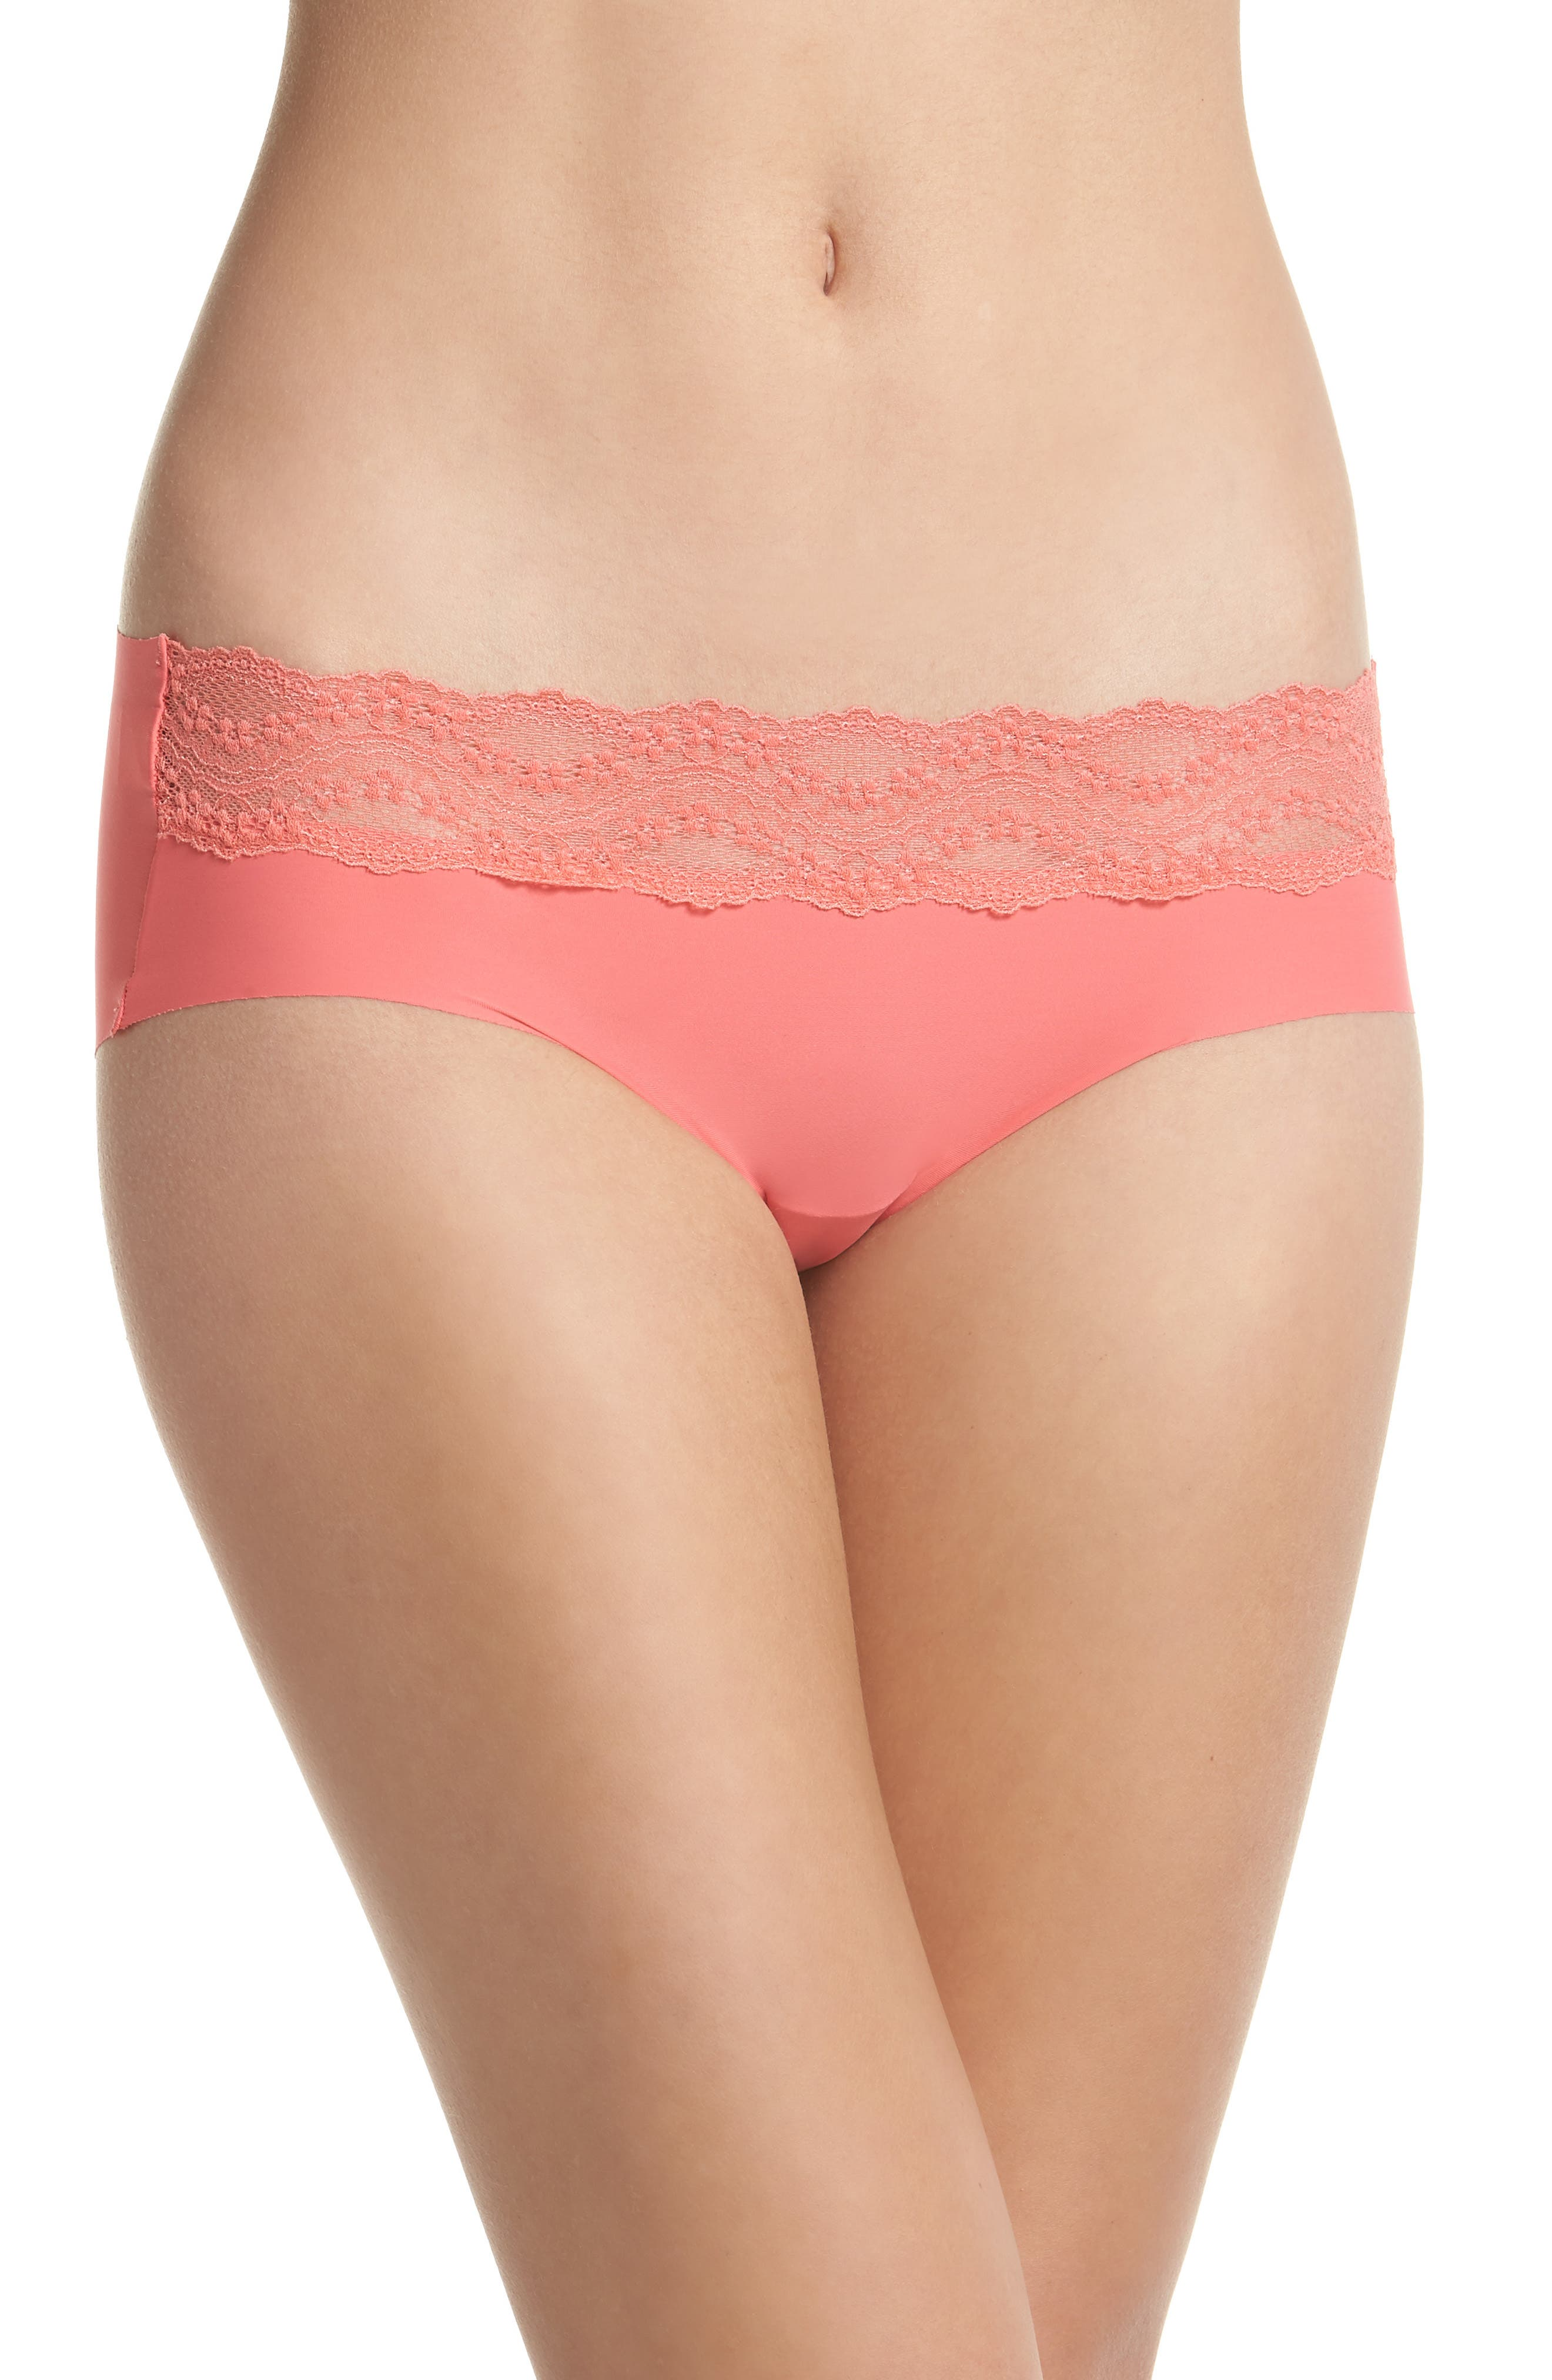 b.bare Hipster Panties,                         Main,                         color, Calypso Coral